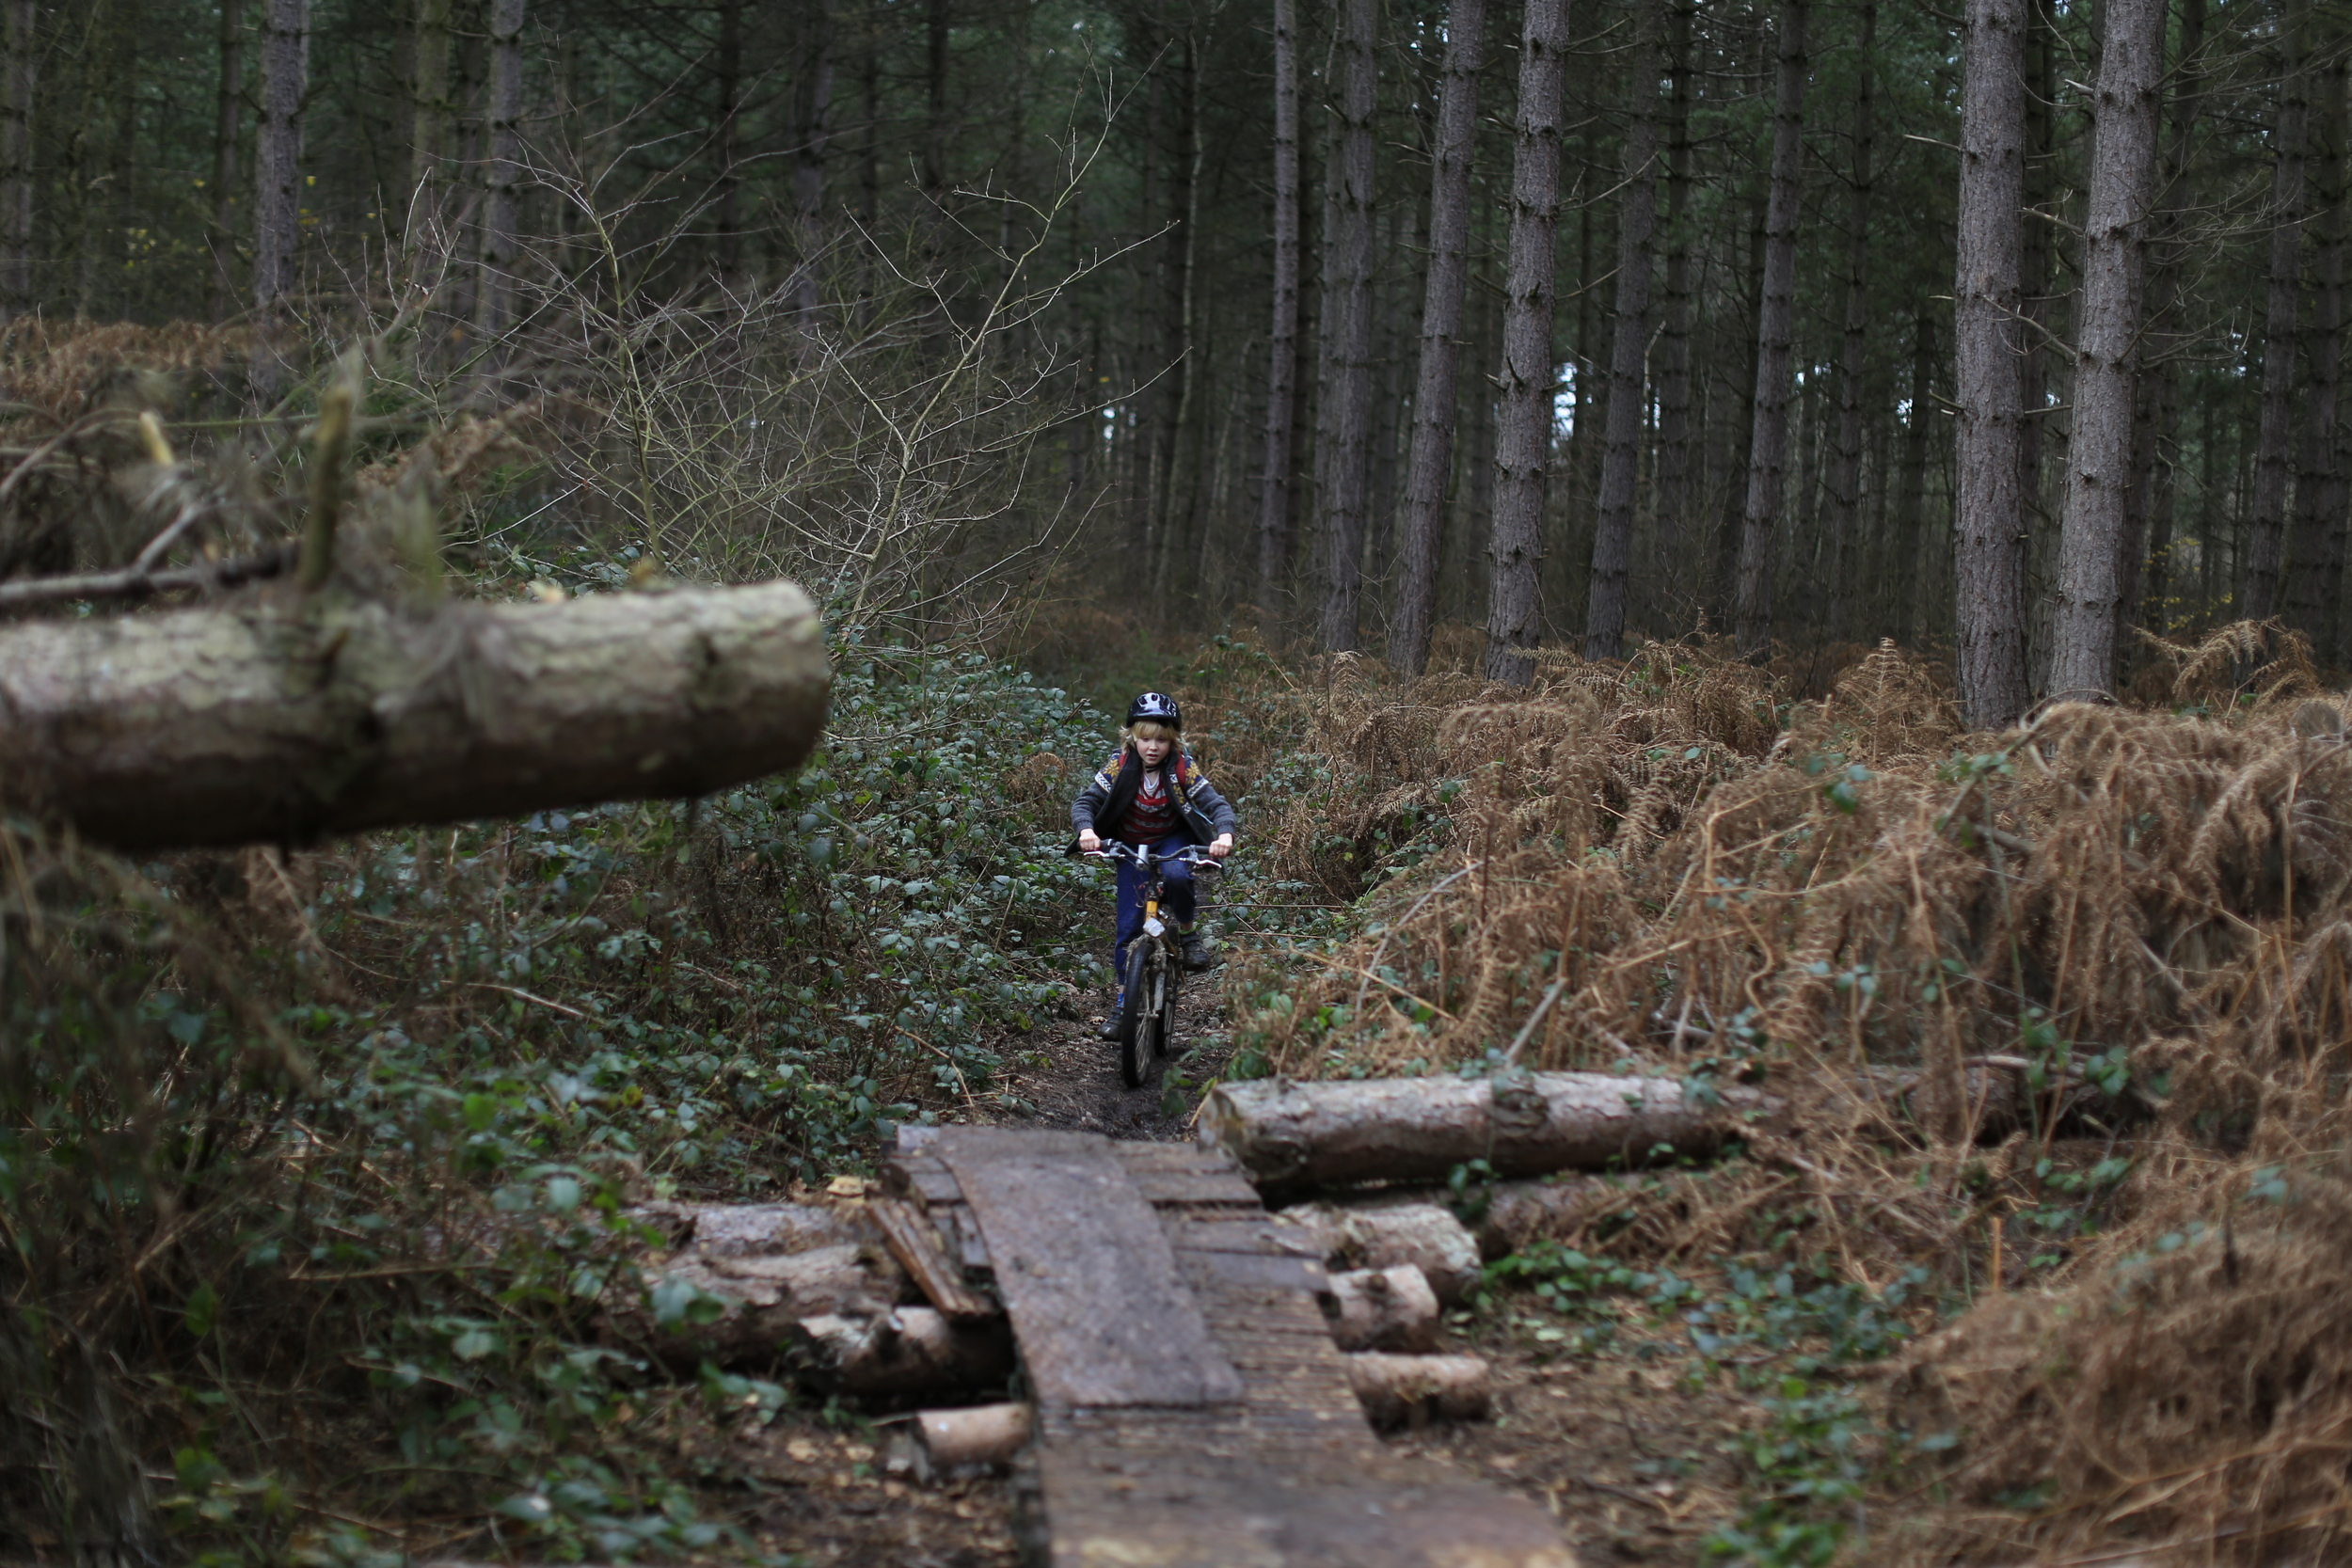 singletrack, woods, biking, cycle gear, canon, canon 6d, photo, photography, off road, nature